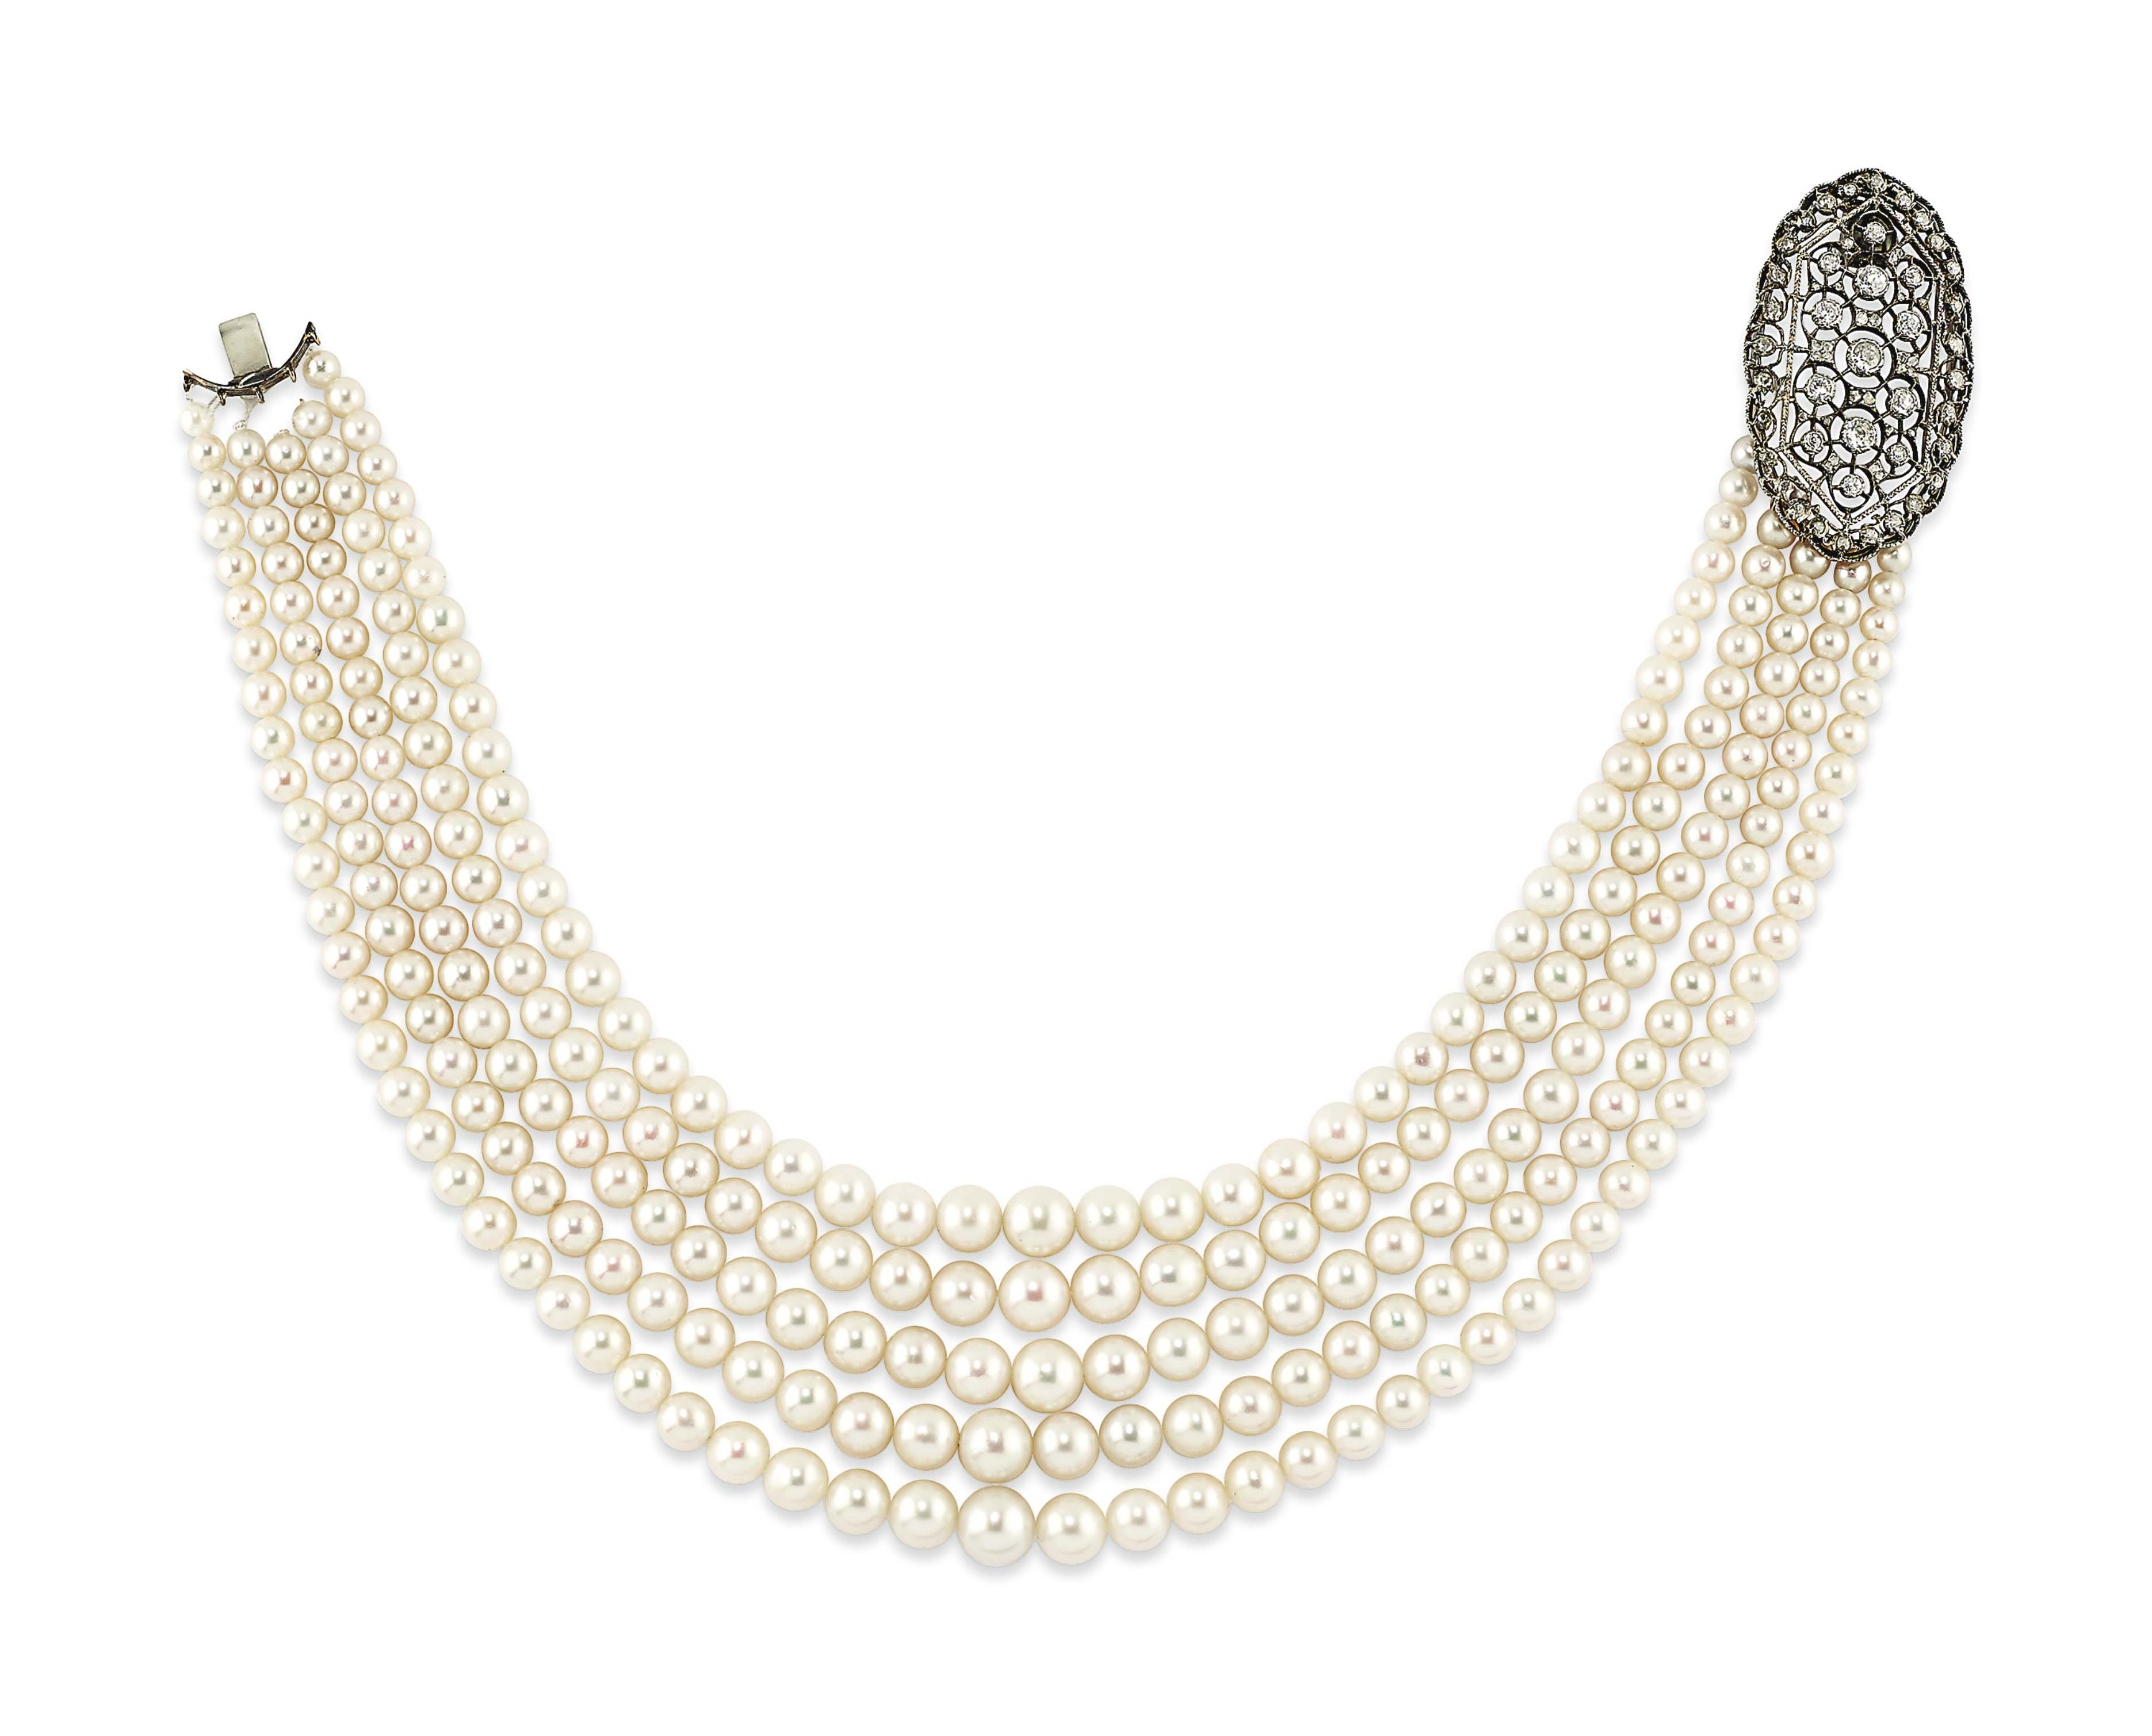 A NATURAL PEARL, CULTURED PEARL AND DIAMOND NECKLACE, BY BUCCELLATI